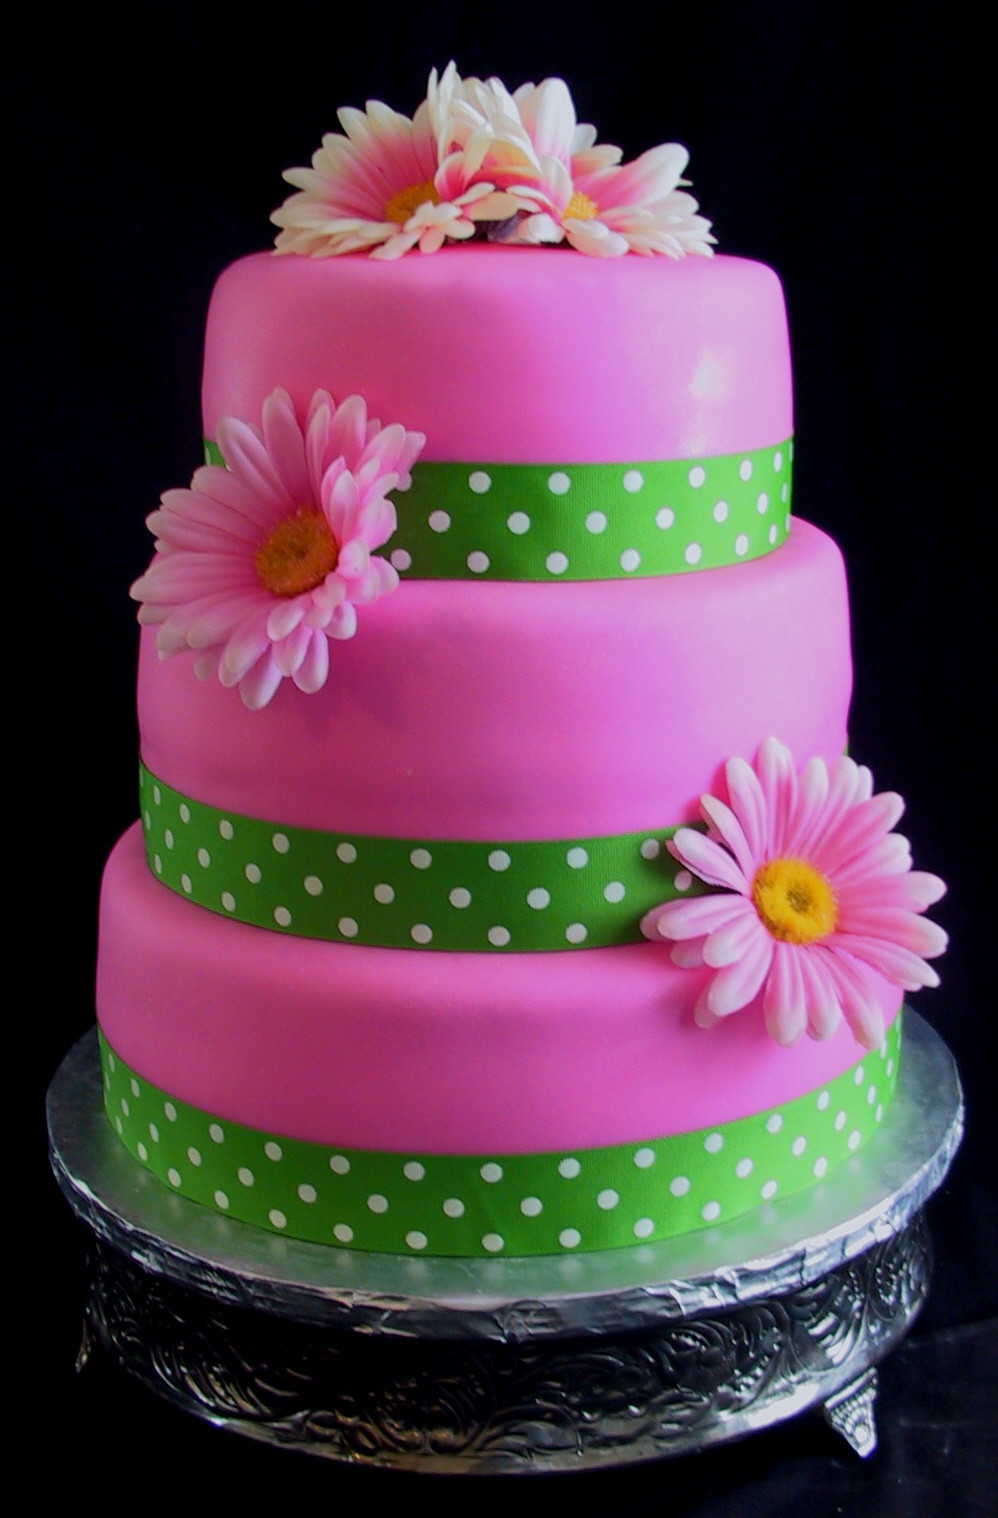 Best ideas about Pink Birthday Cake . Save or Pin Bridal Shower Pink Gerber Daisy Cake – Bardstown KY Now.